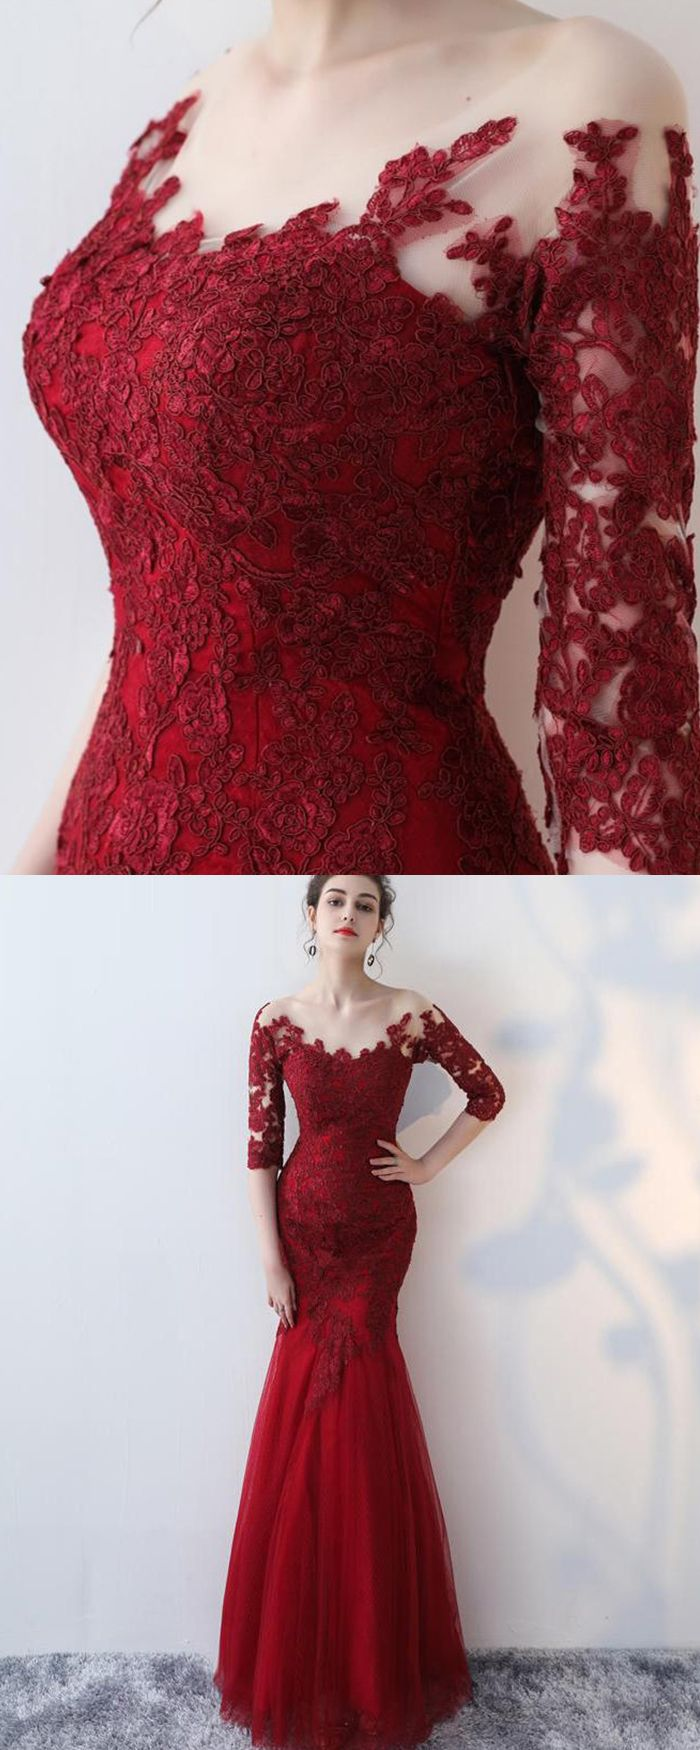 Off the Shoulder Burgundy Appliqued Mermaid Prom Dress with Half ... 96ed6e578ea5